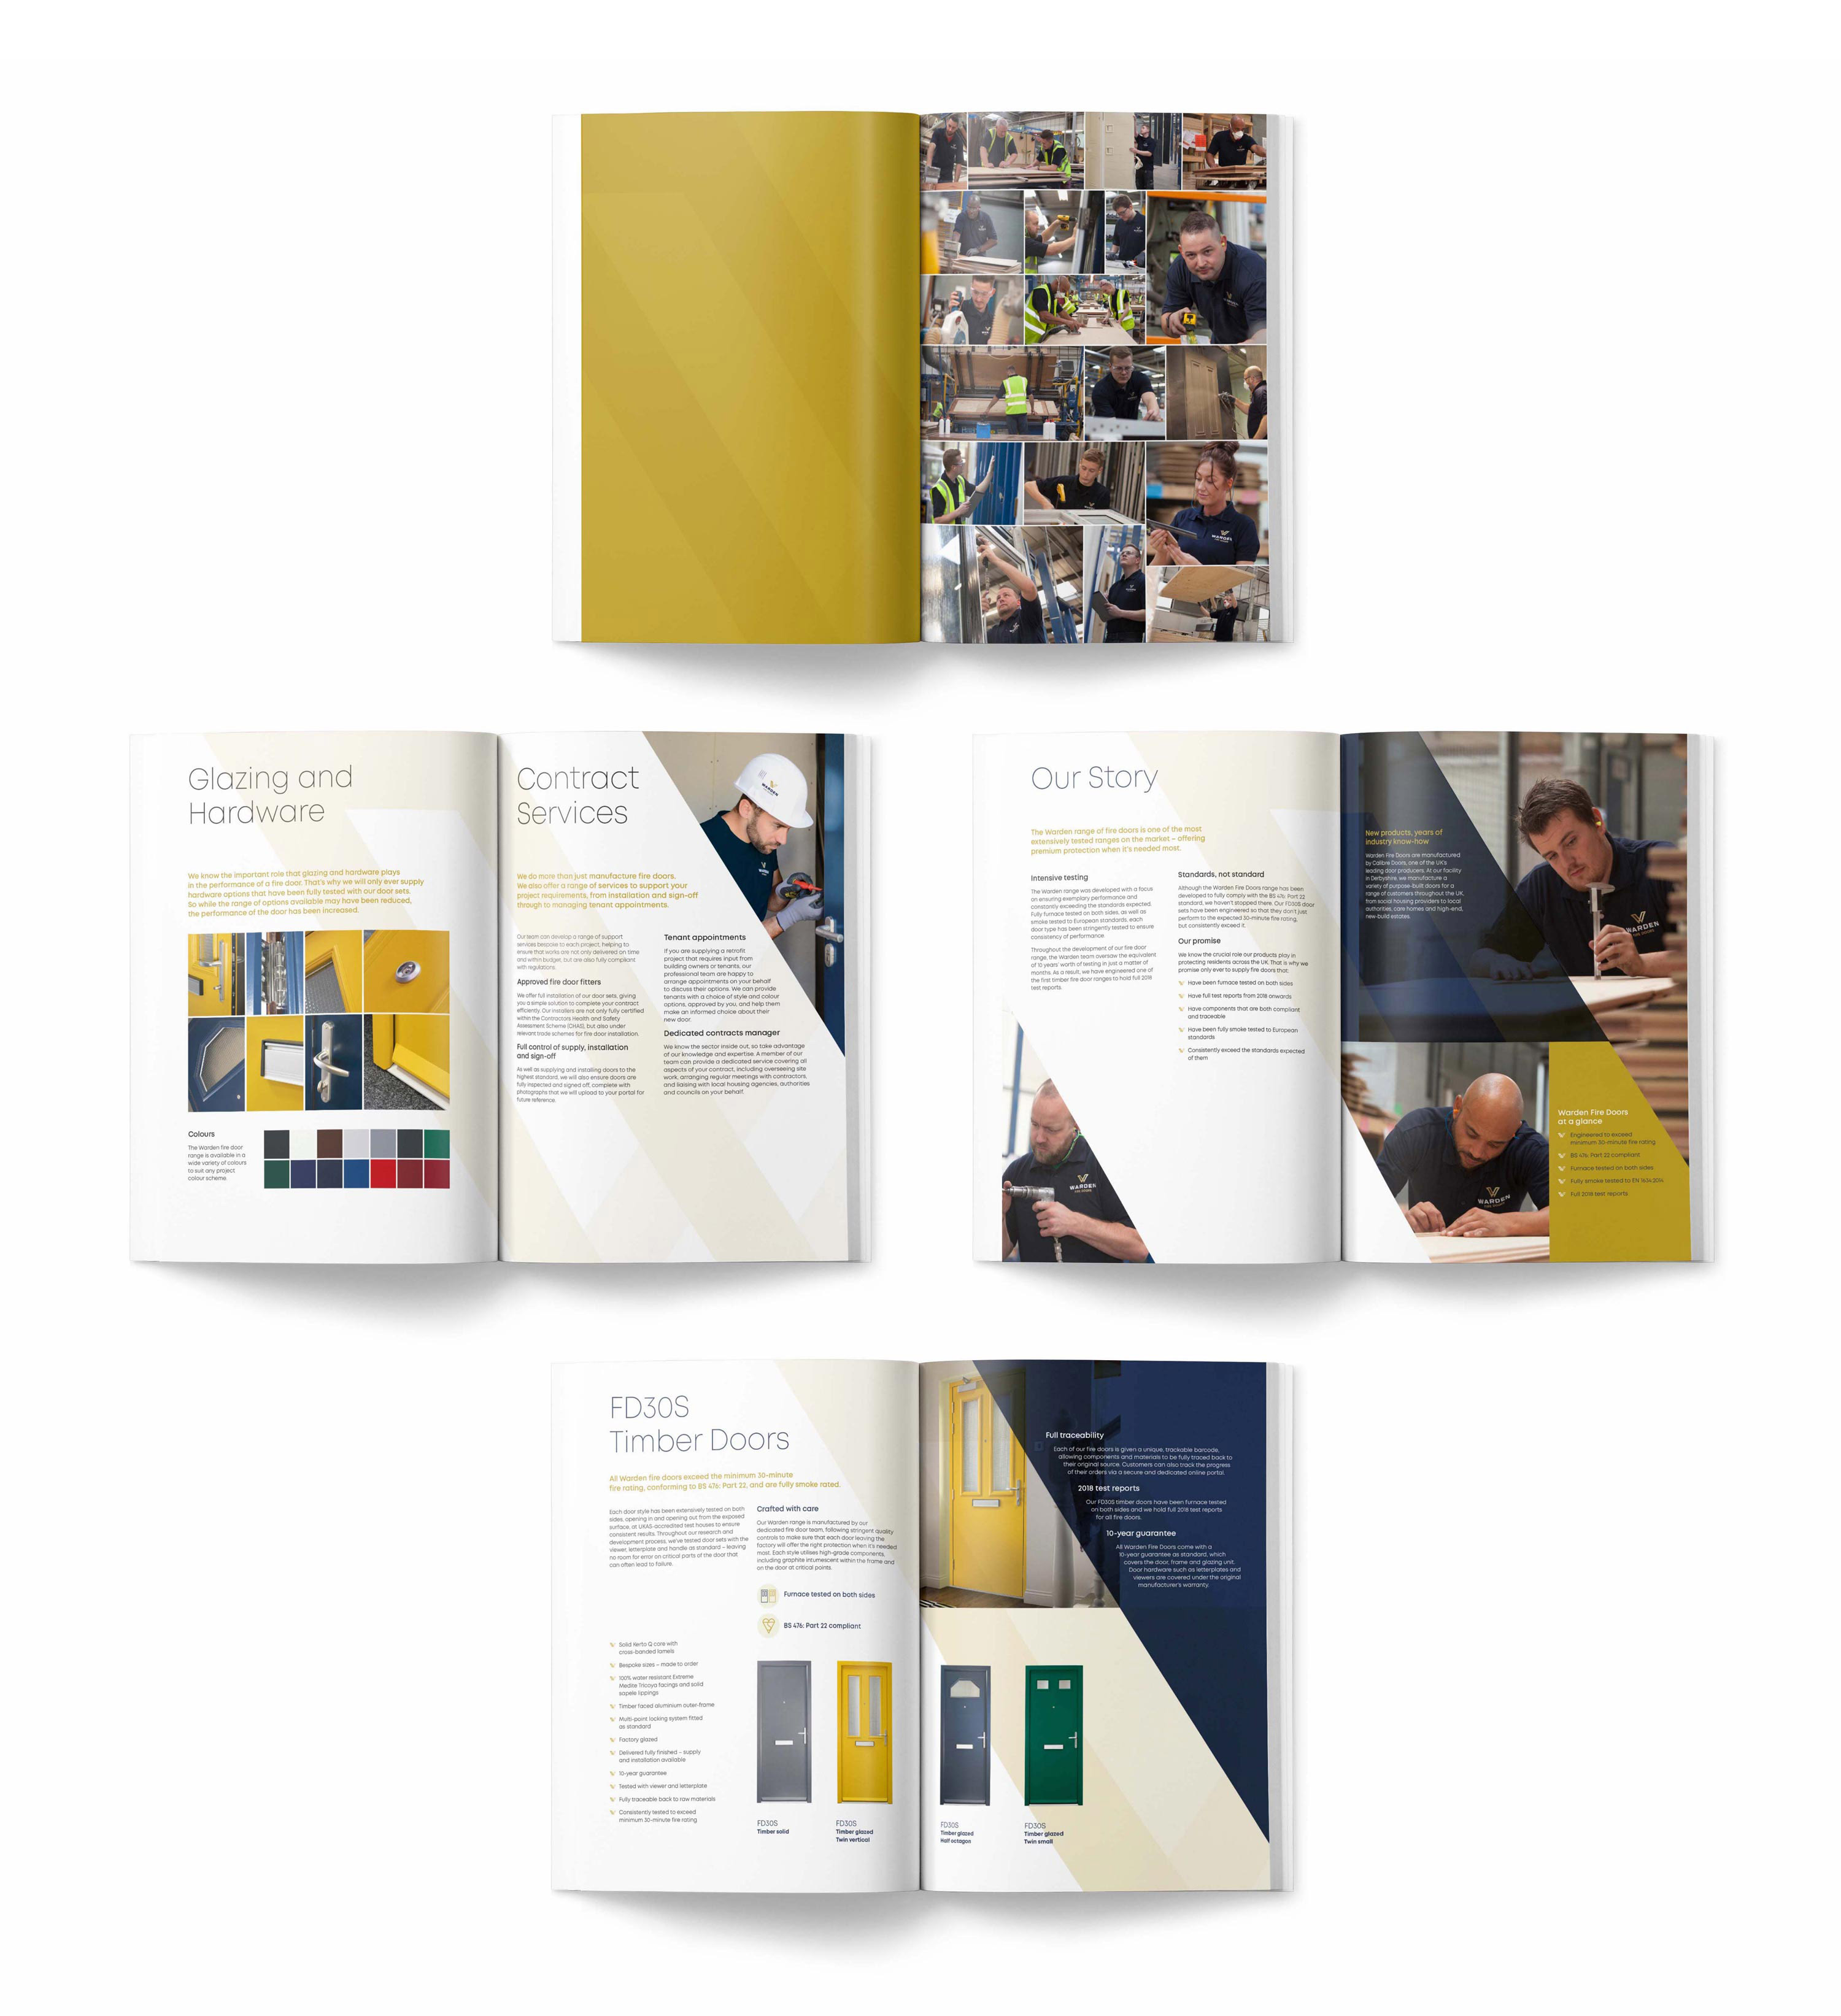 Inner pages from the Warden Fire Doors brochure, designed by branding agency Mighty